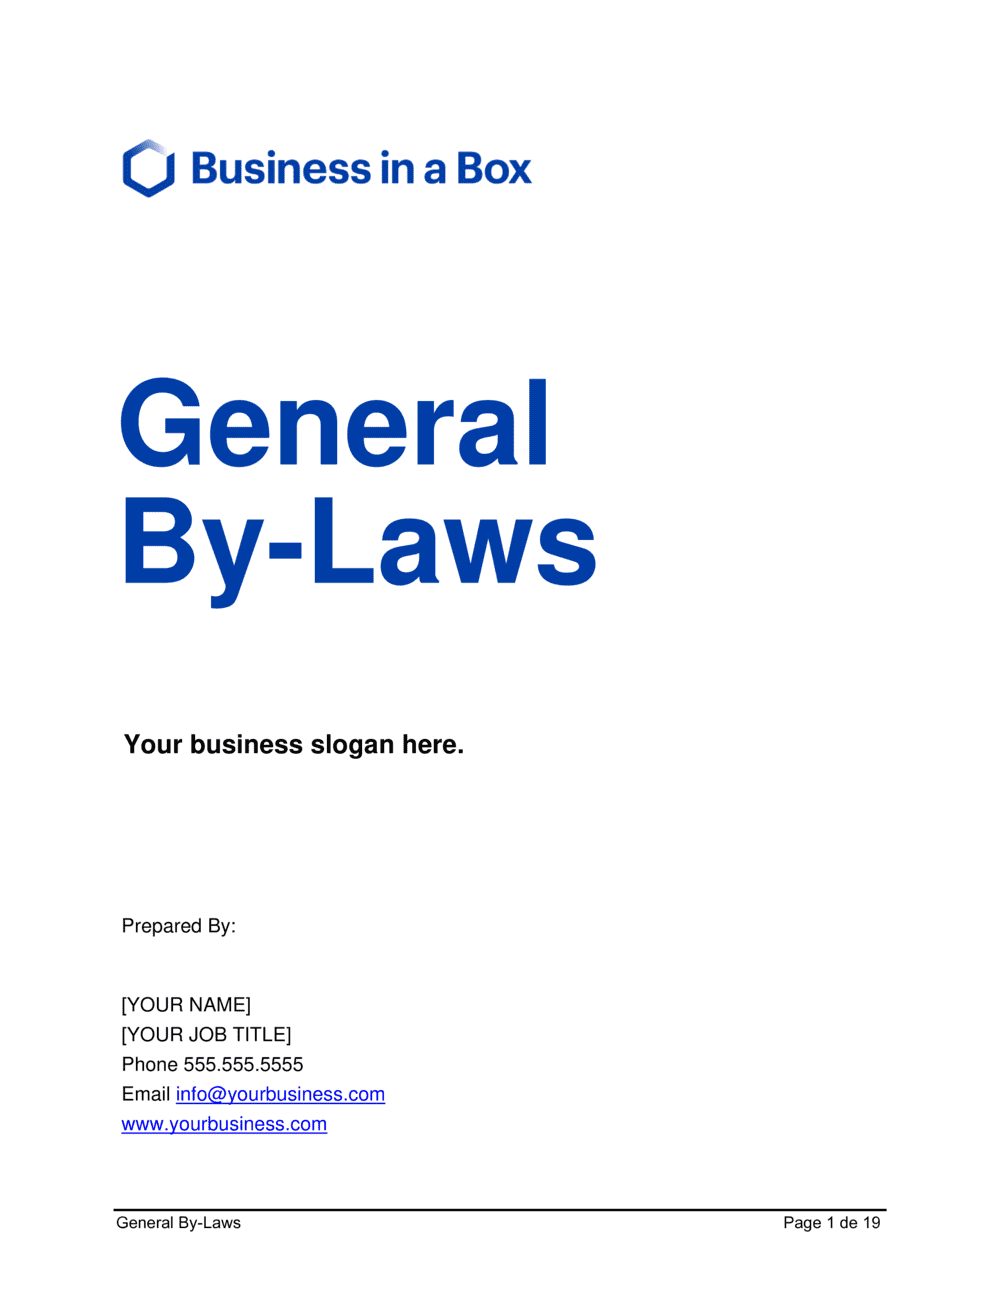 Business-in-a-Box's General By-Laws Template